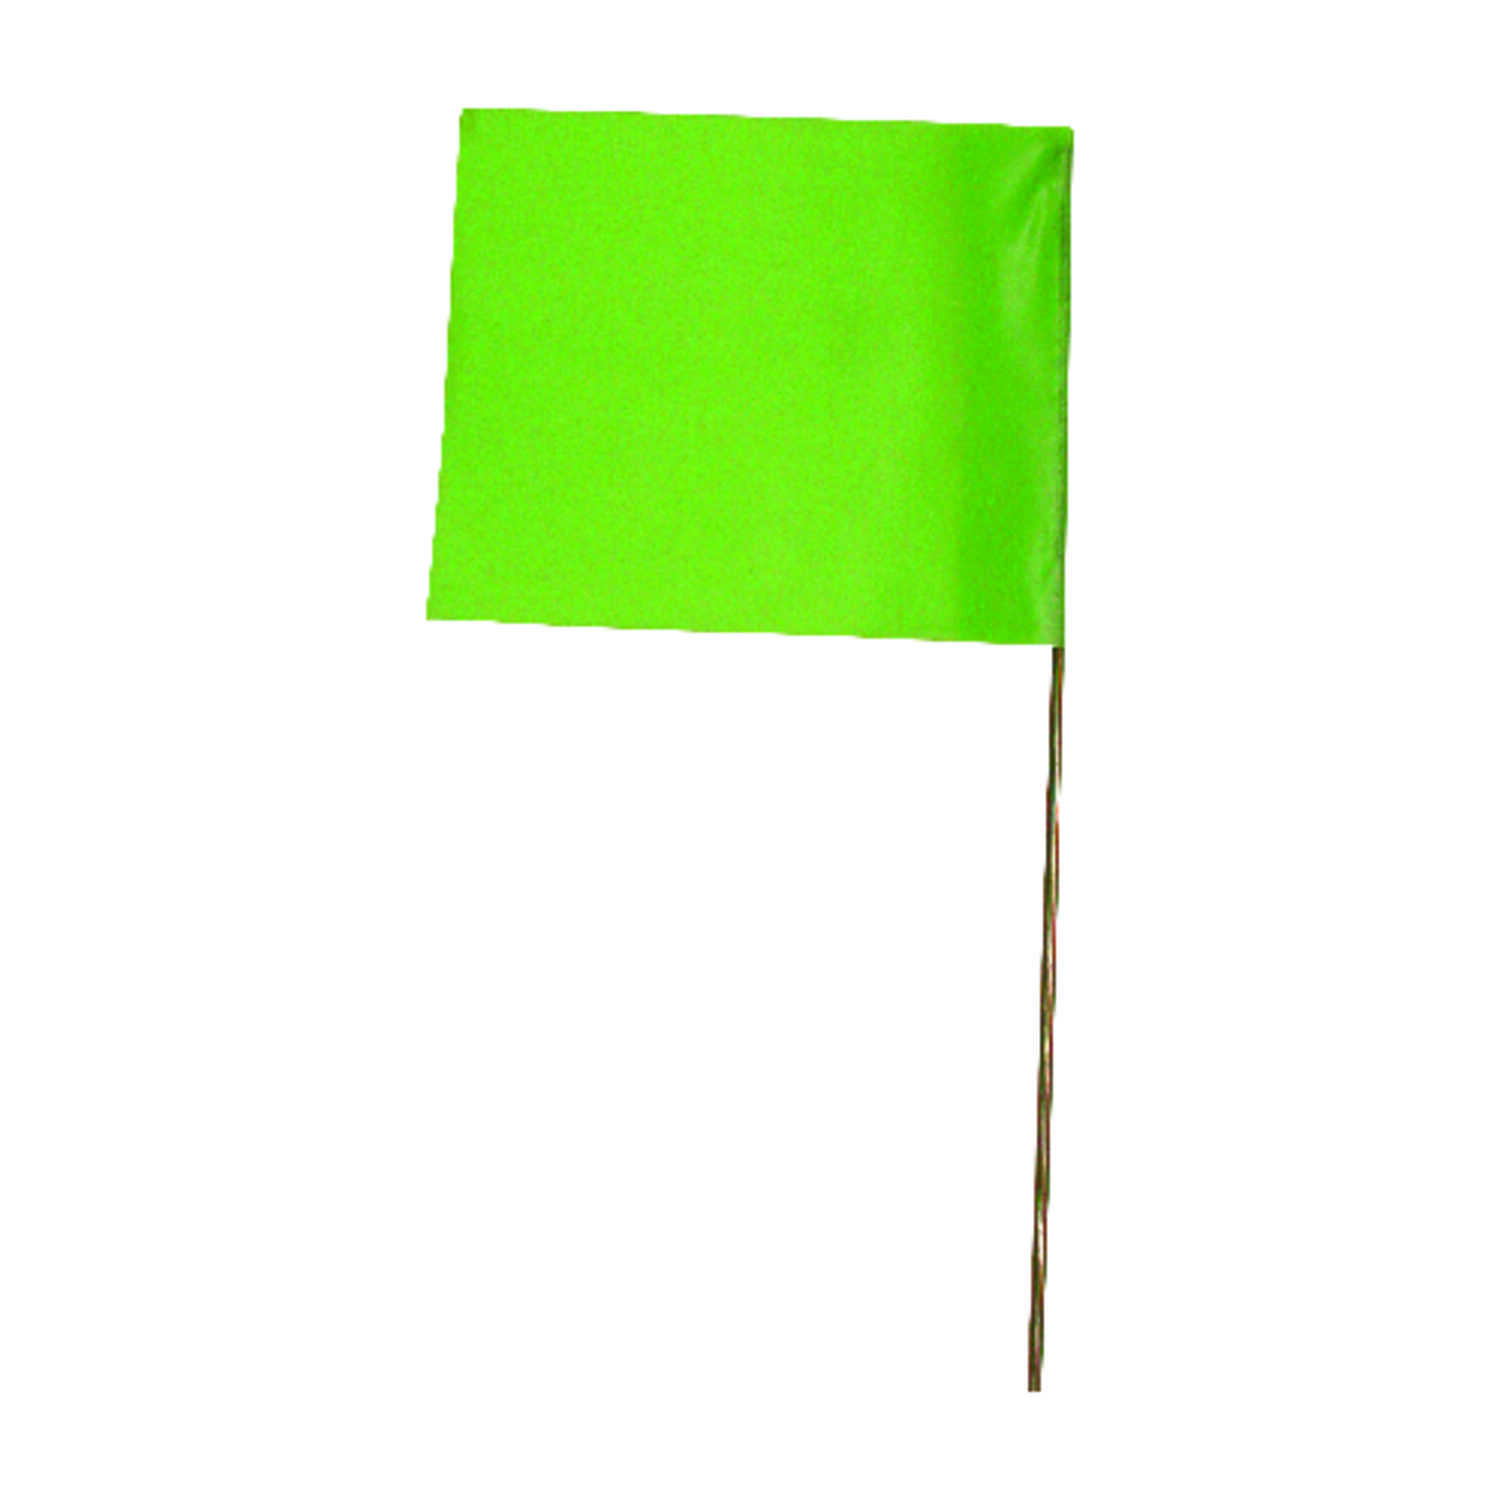 C.H. Hanson  15 in. Fluorescent Lime  Marking Flags  Polyvinyl  10 pk